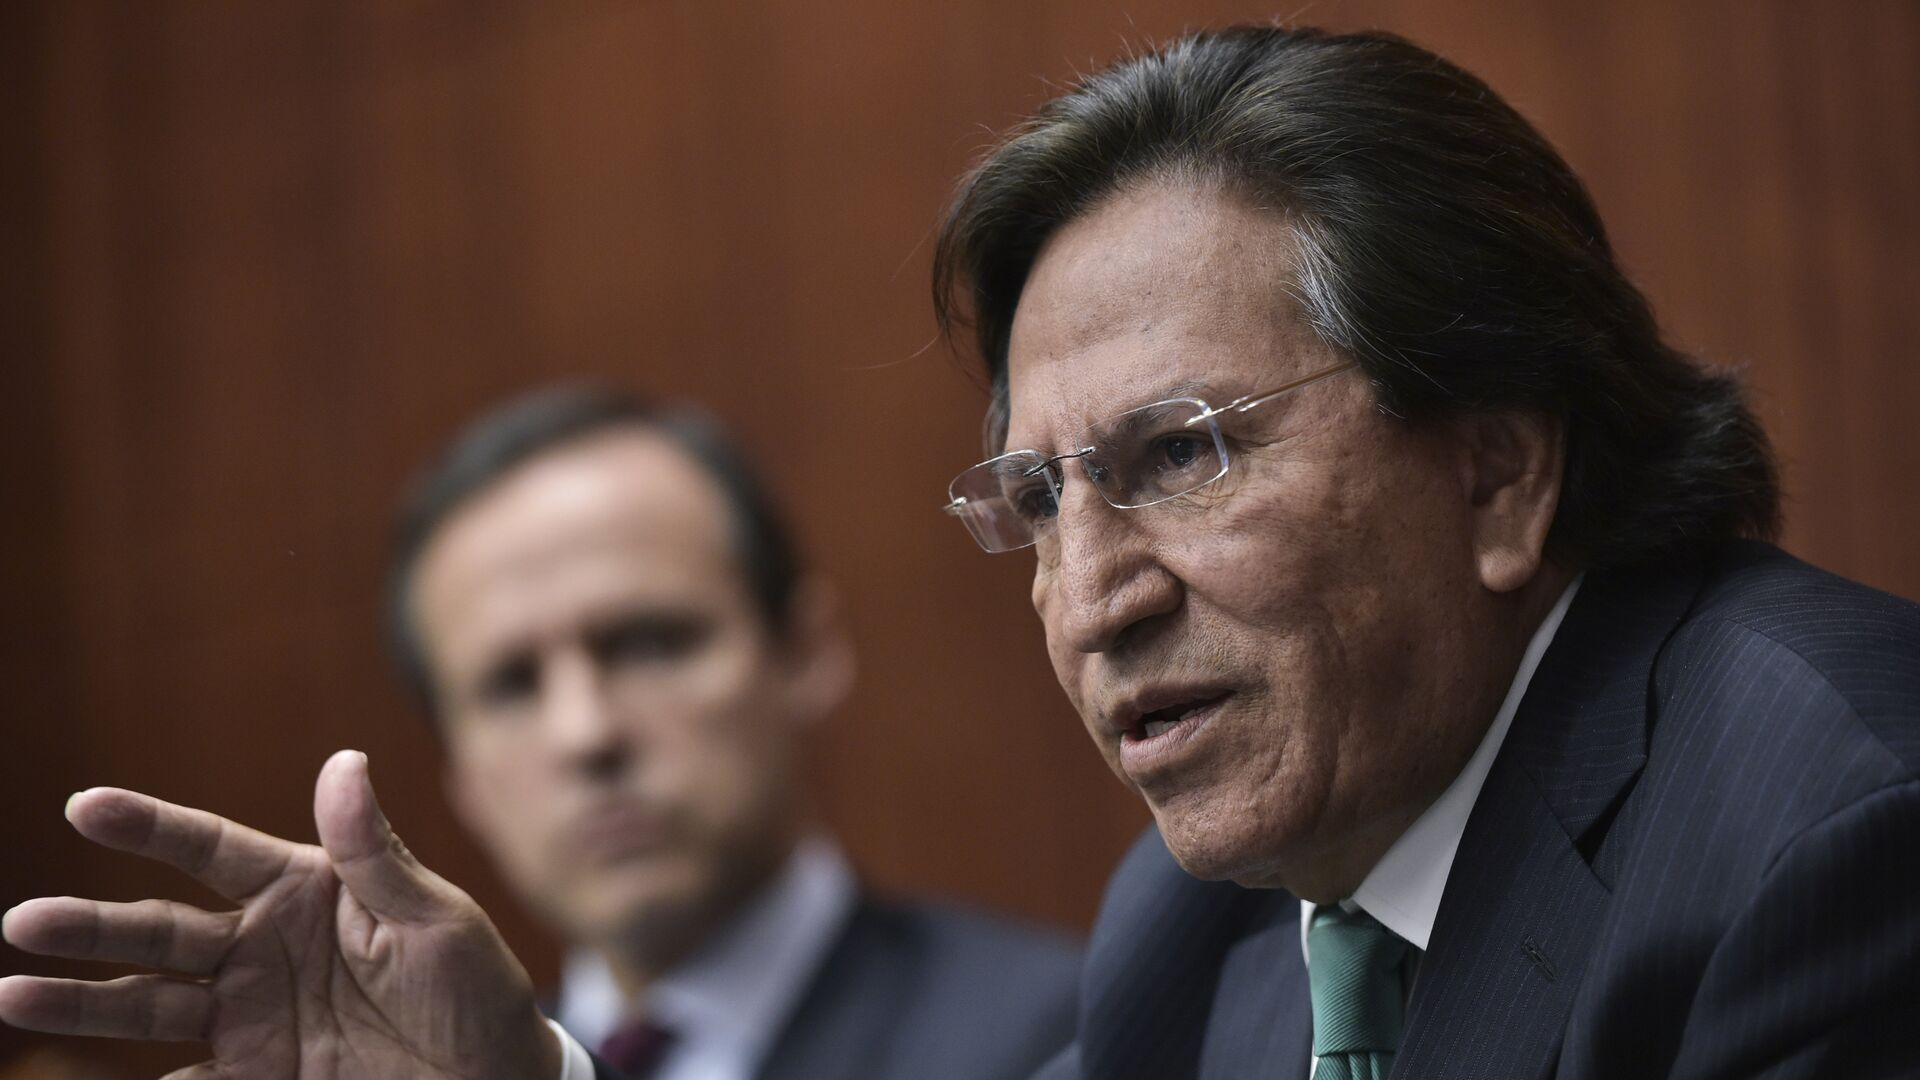 Former President of Peru Alejandro Toledo (R) speaks, watched by former President of Bolivia Jorge Quiroga (L), during a discussion on Venezuela and the OAS at The Center for Strategic and International Studies (CSIS) on June 17, 2016 in Washington, DC.  - Sputnik Mundo, 1920, 29.09.2021